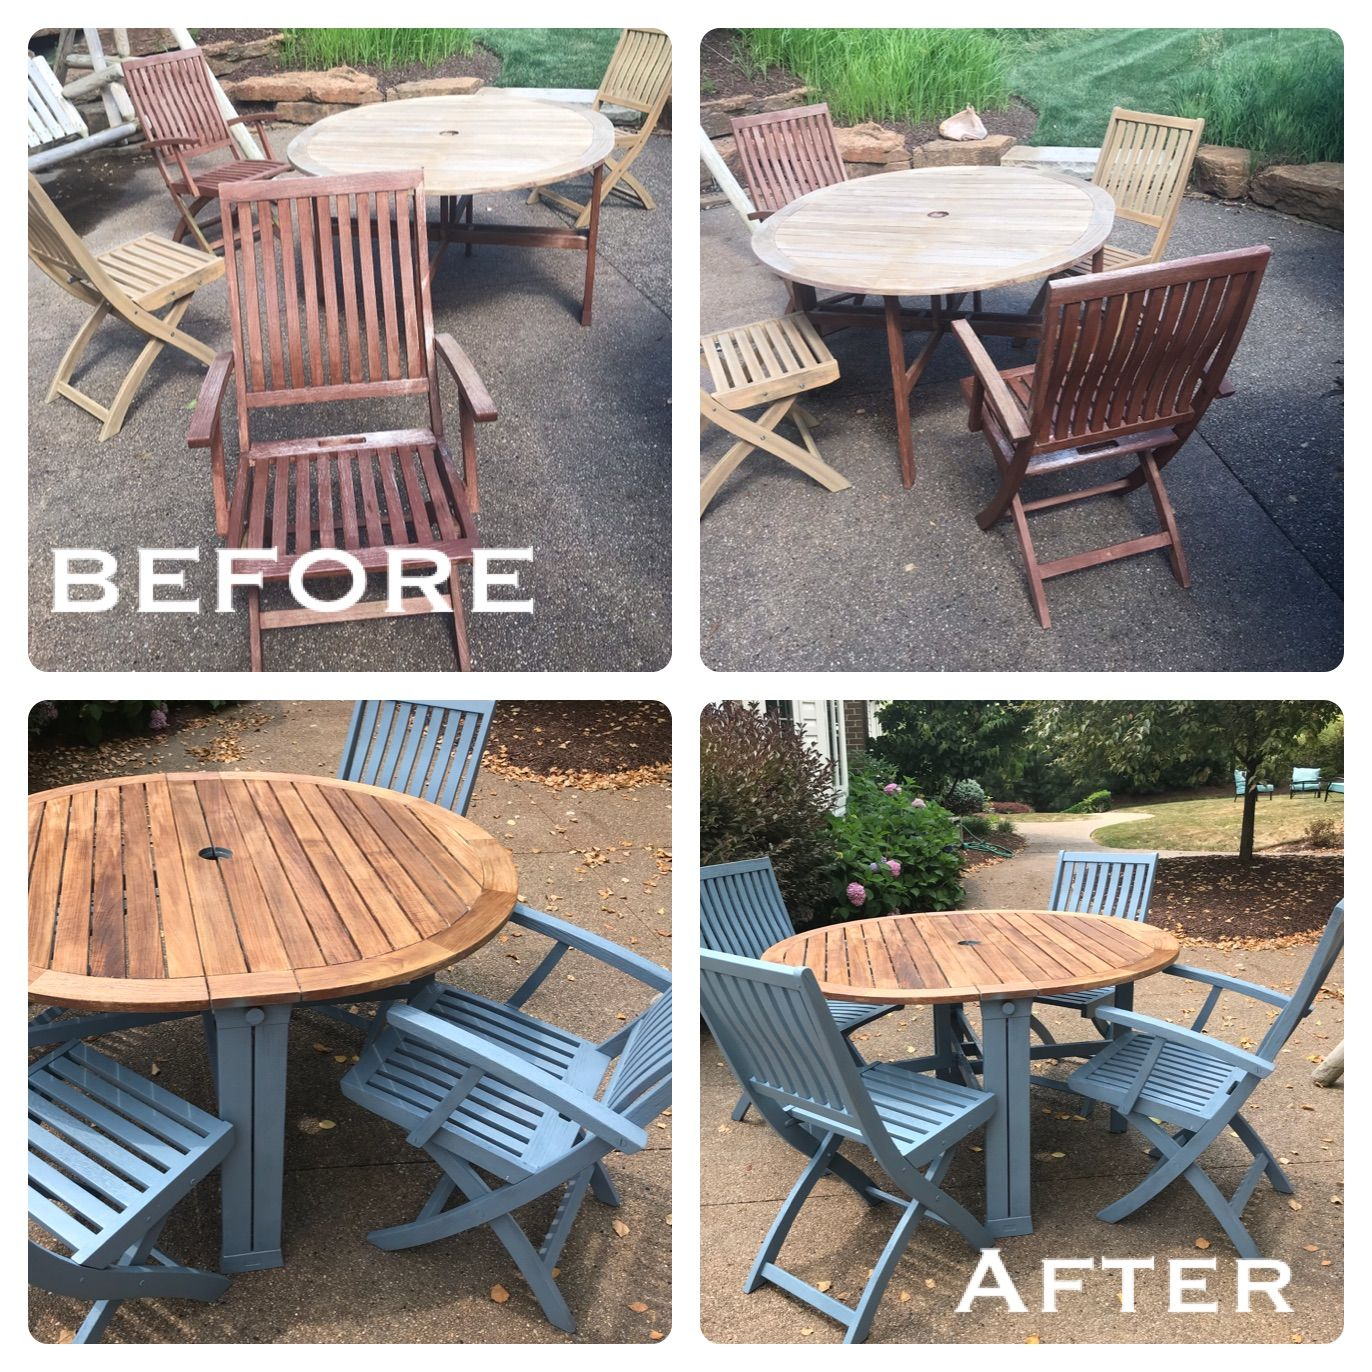 Teak Wood Outdoor Table Wood Furniture Easy Transformation Blue Chairs Diy S Wooden Outdoor Furniture Painted Outdoor Furniture Teak Outdoor Furniture